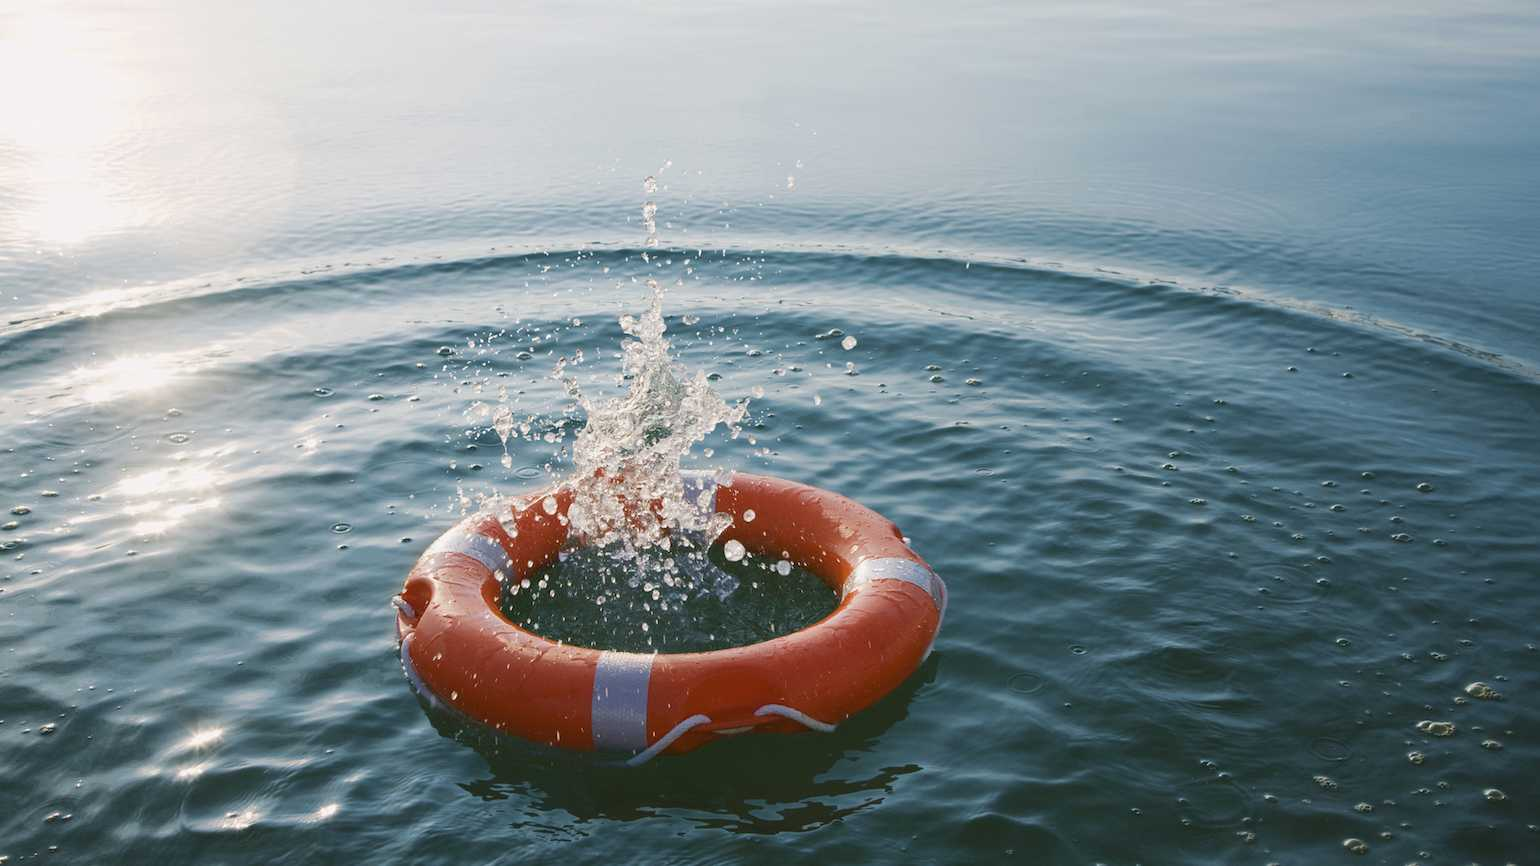 Drowning in details? Spiritual lifesavers